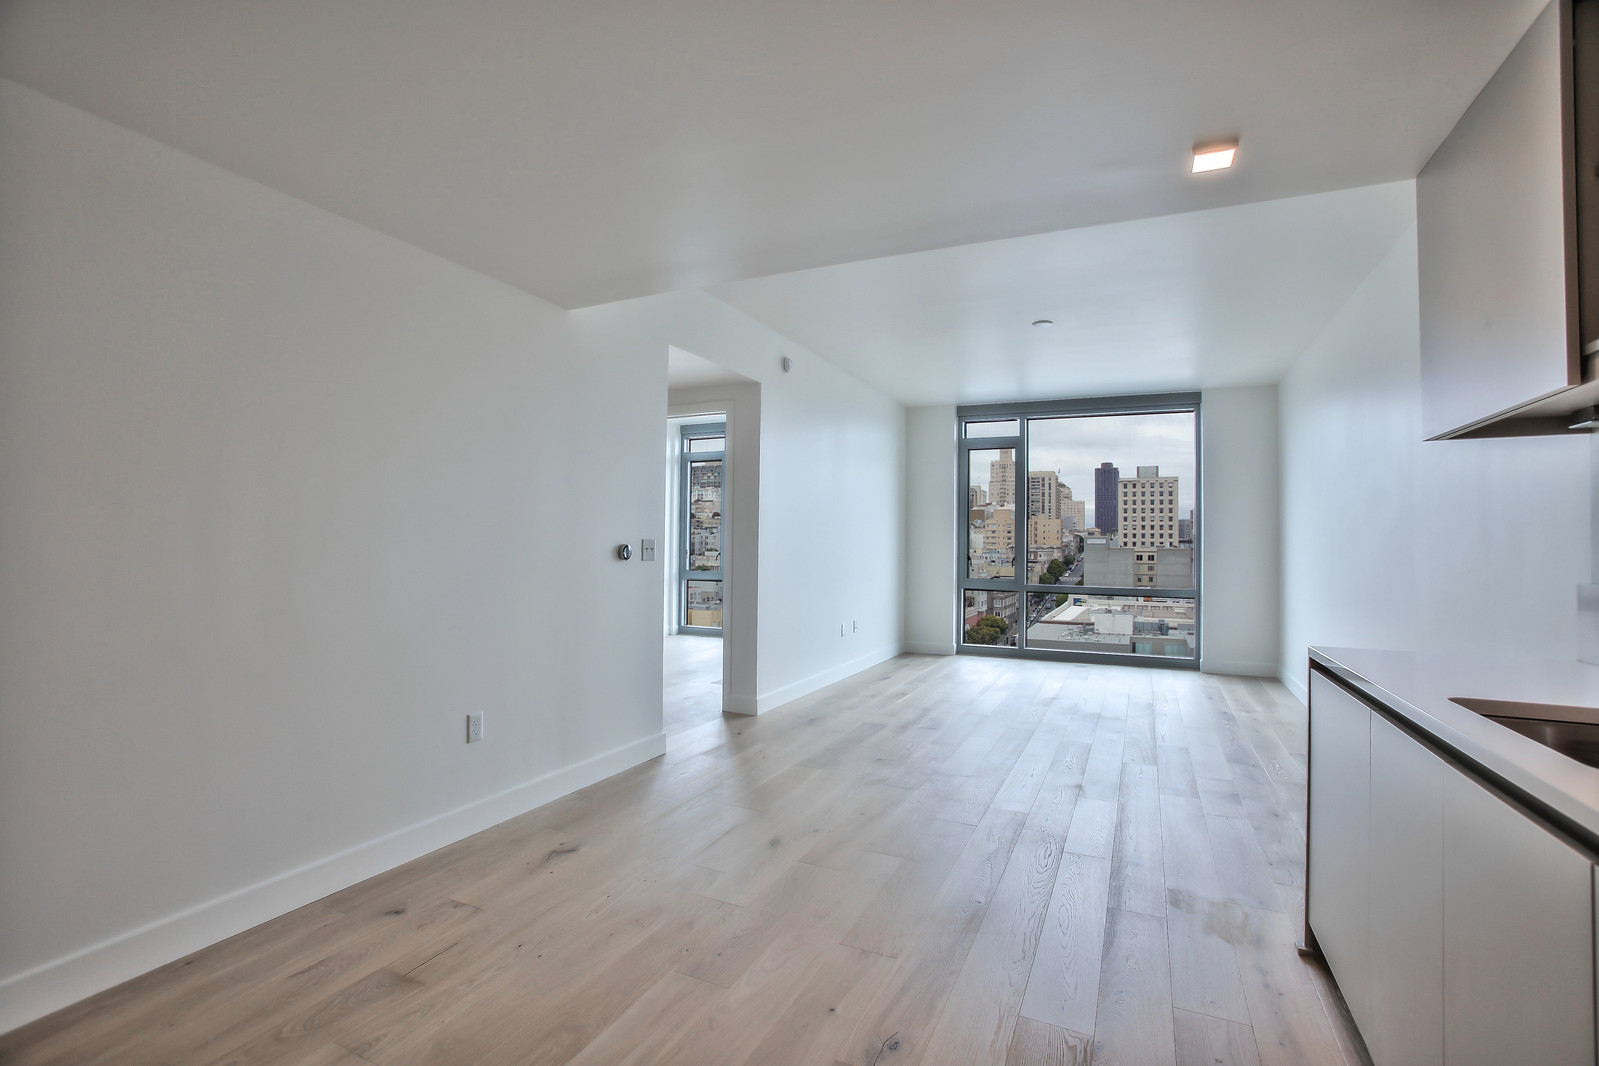 993 Tennessee Street #9, San Francisco, CA, 94107 - Condo For Rent